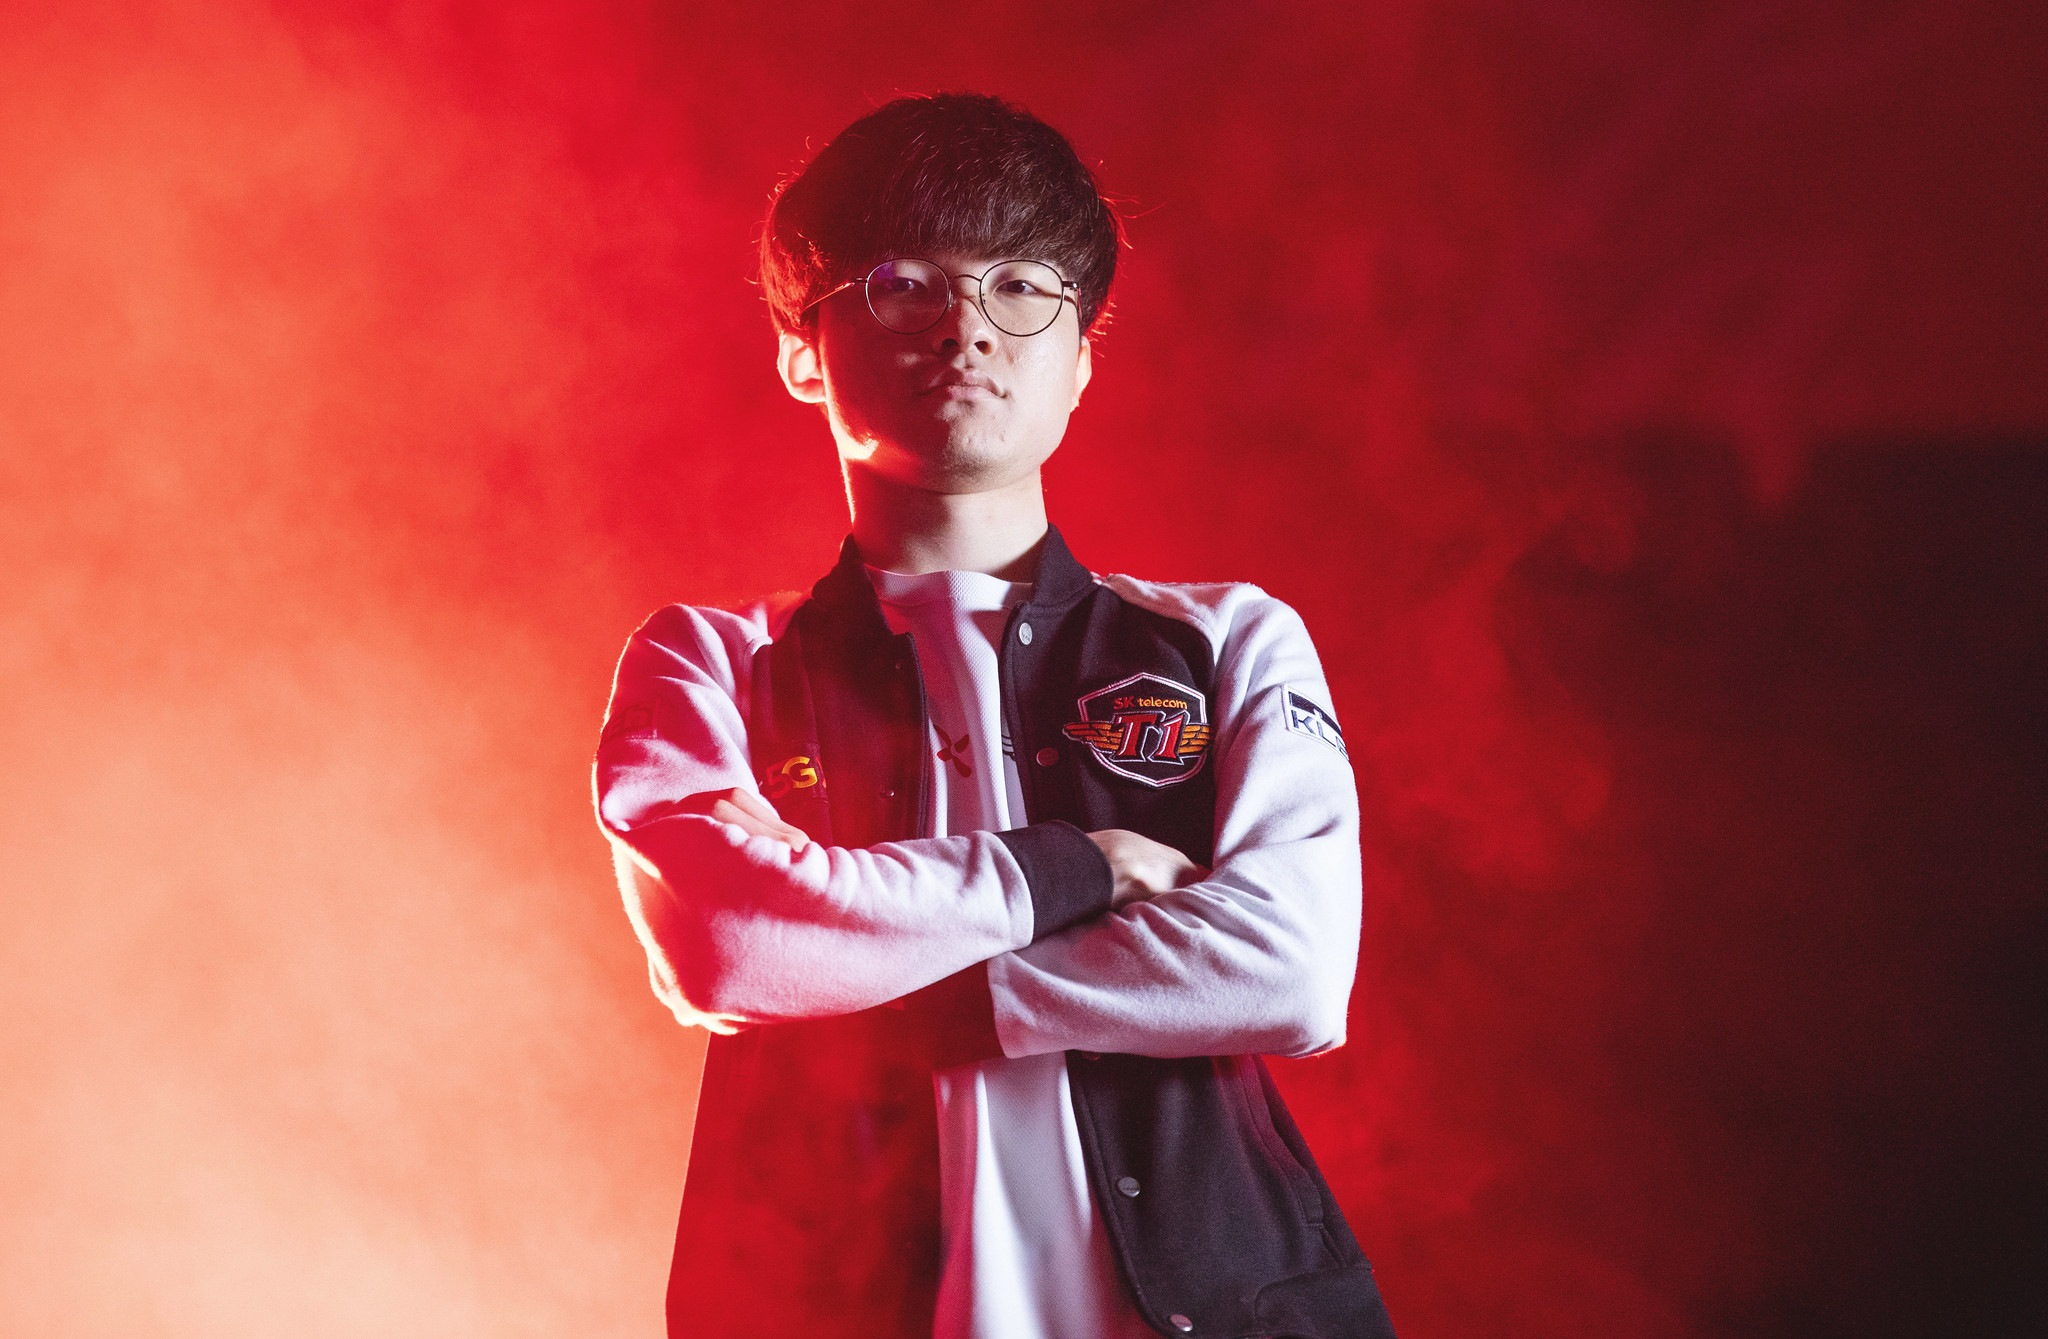 T1 beat Gen.G to enter tie for first place in Korea's LCK